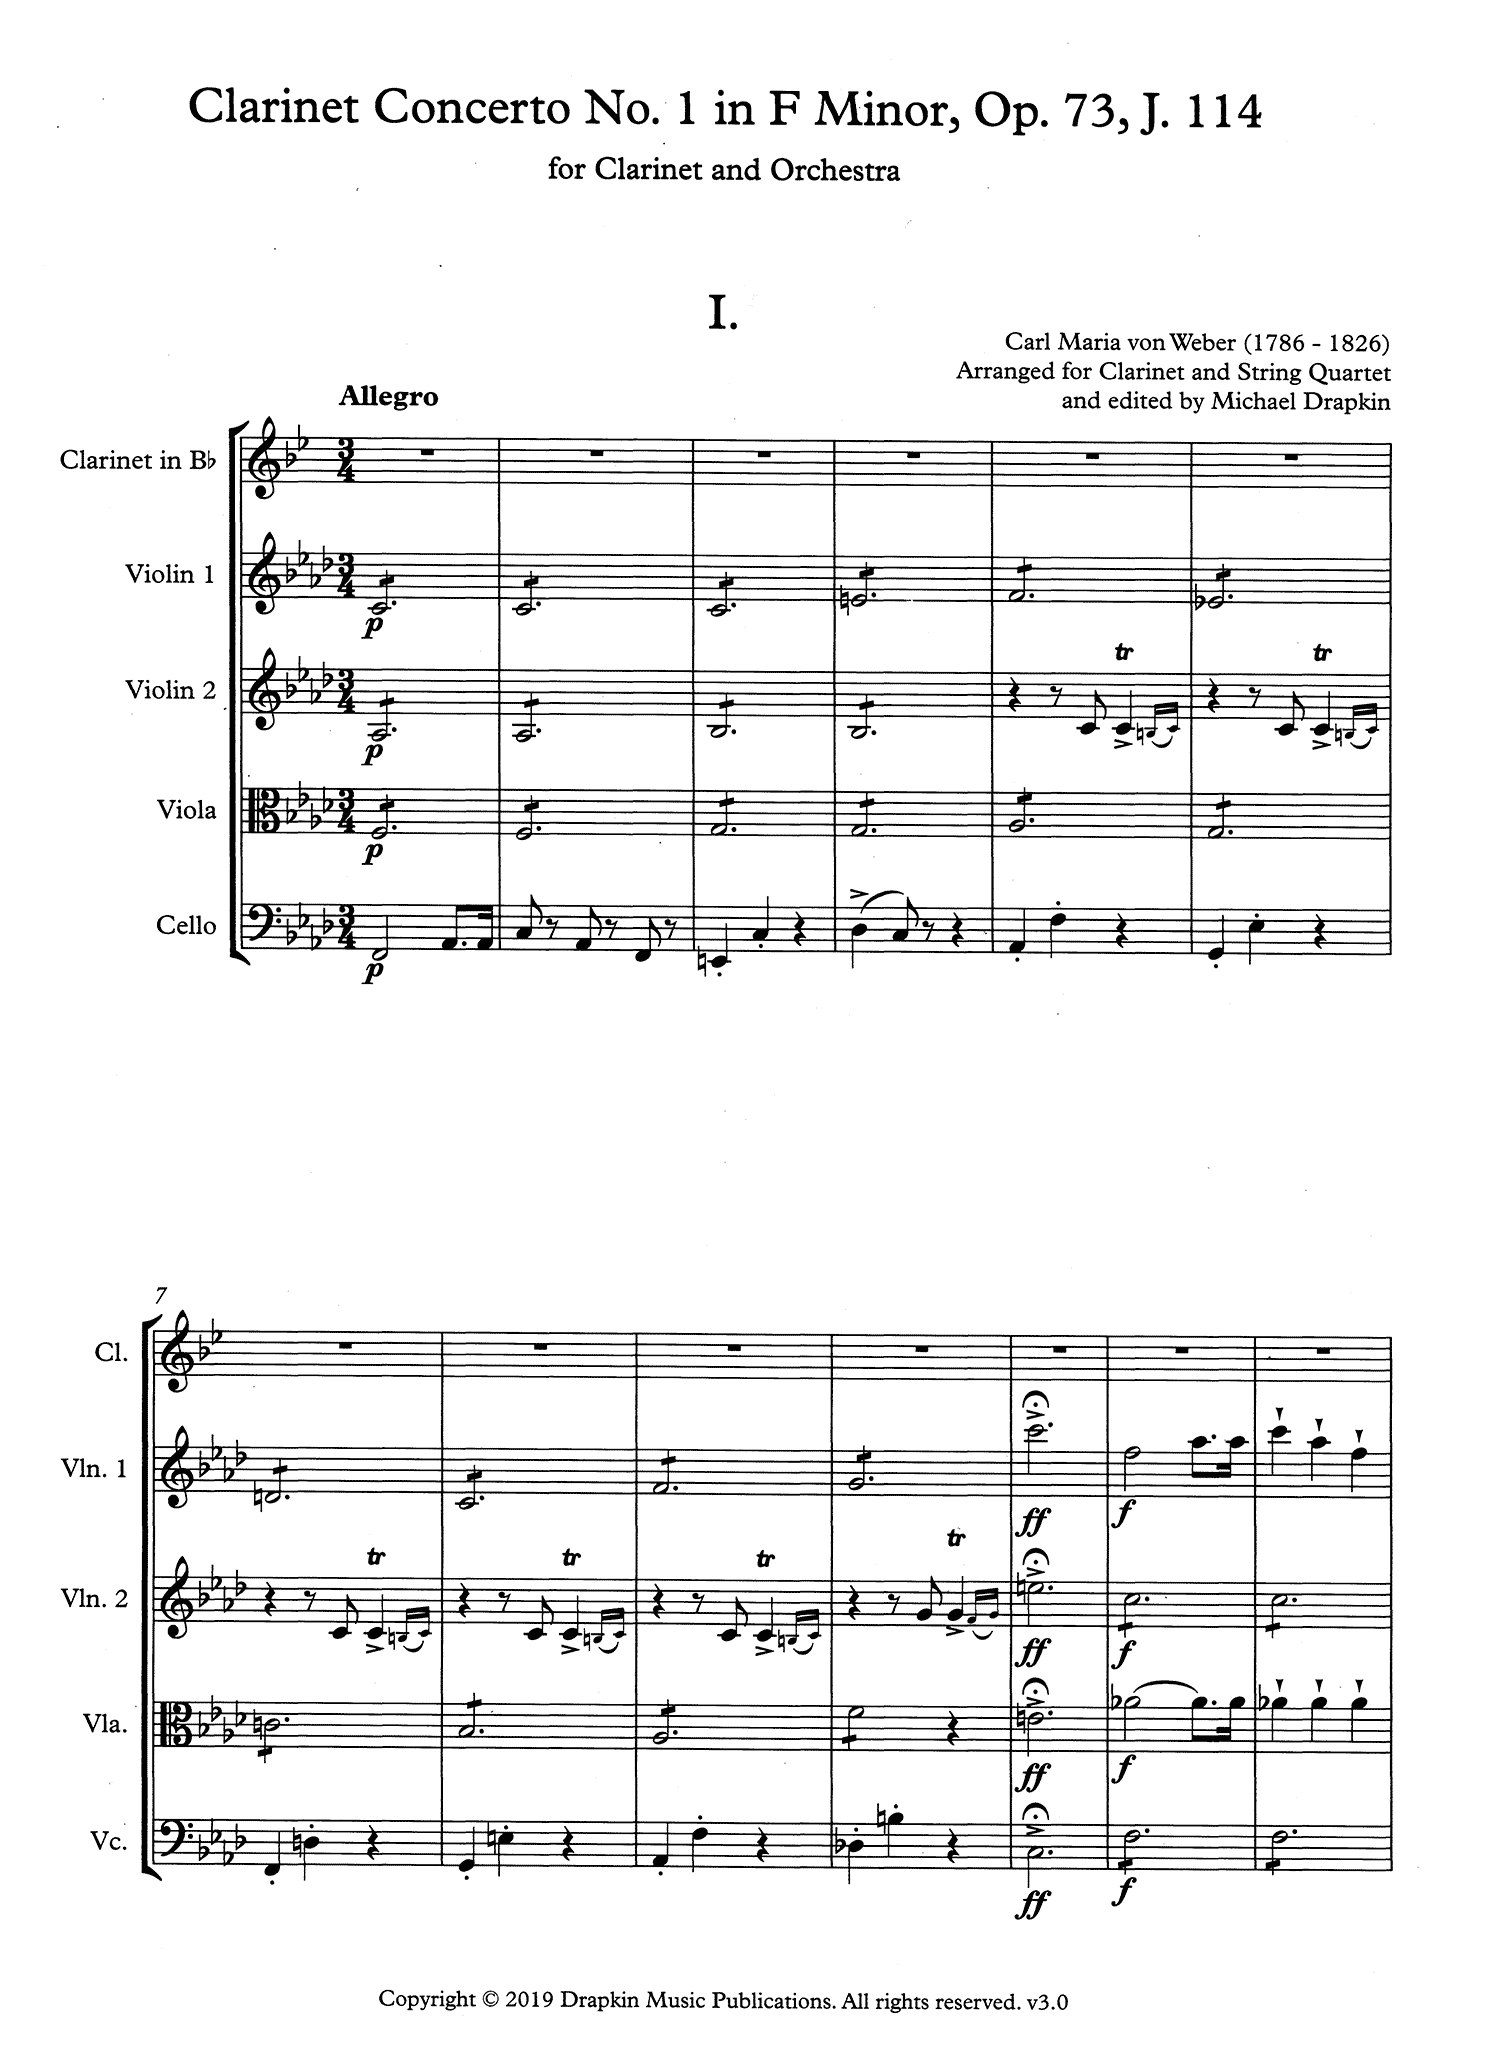 Clarinet Concerto No. 1, Op. 73 - Movement 1